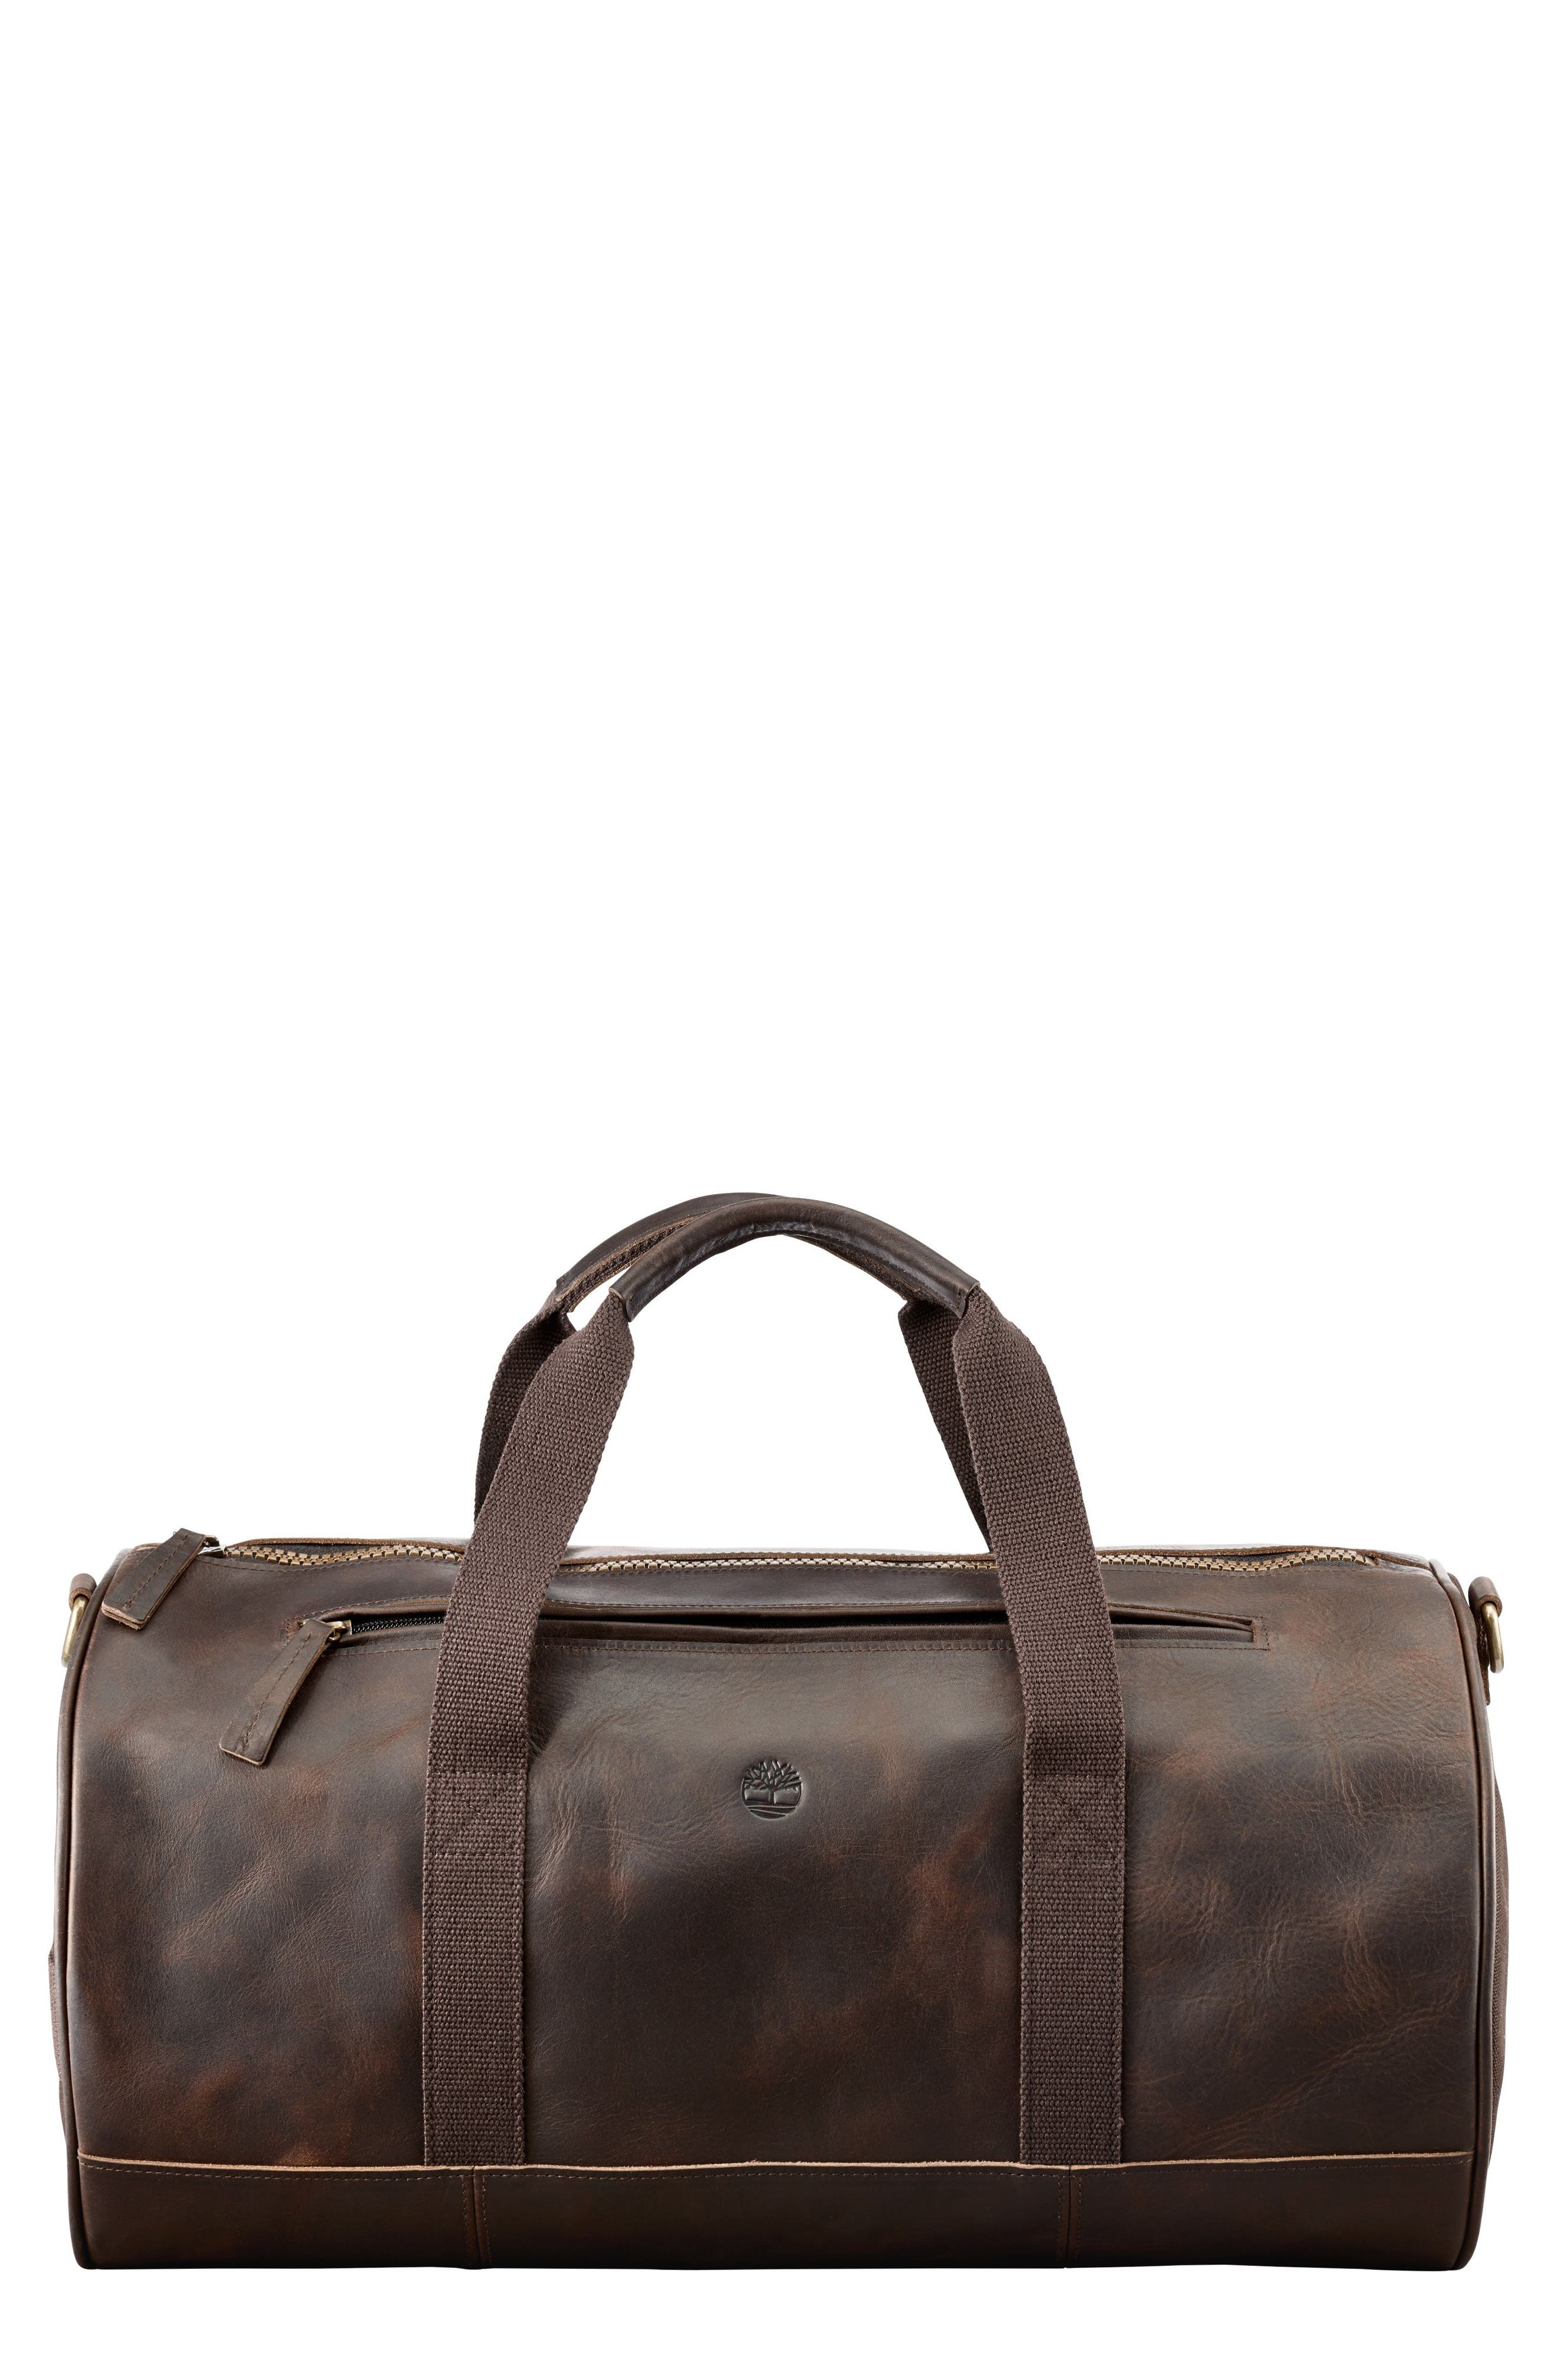 Tuckerman Leather Duffel,                             Main thumbnail 1, color,                             DARK BROWN